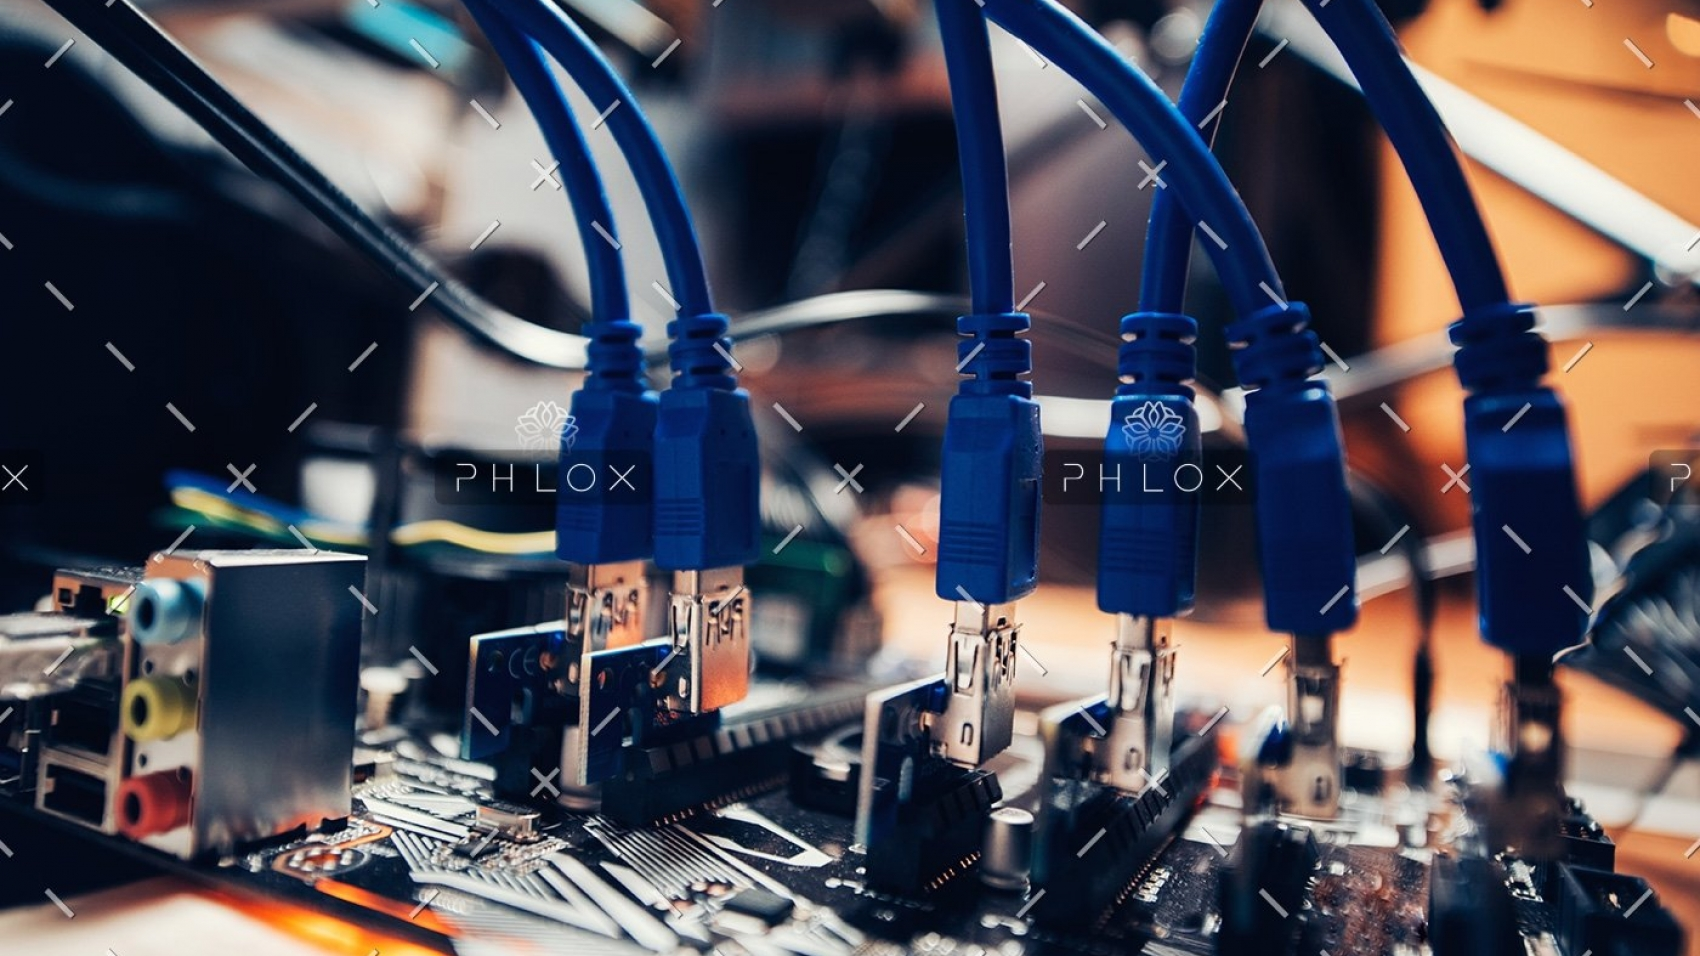 demo-attachment-77-cryptocurrency-mining-rig-technological-details-P4D7PWV